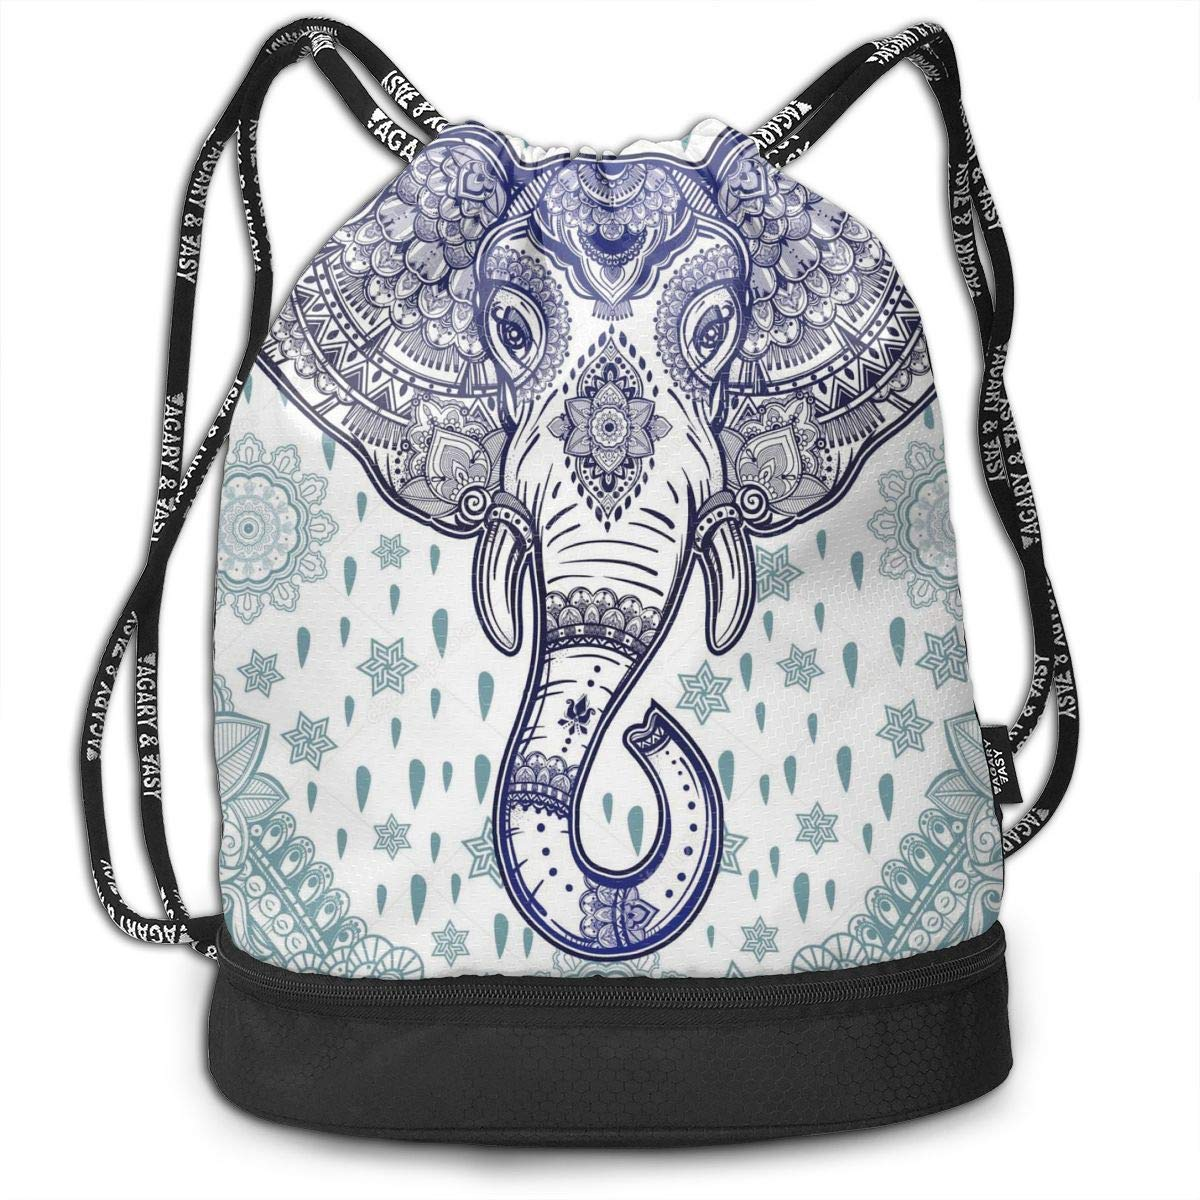 HUOPR5Q Heart Wolf Boho Ethnic Elephant Drawstring Backpack Sport Gym Sack Shoulder Bulk Bag Dance Bag for School Travel